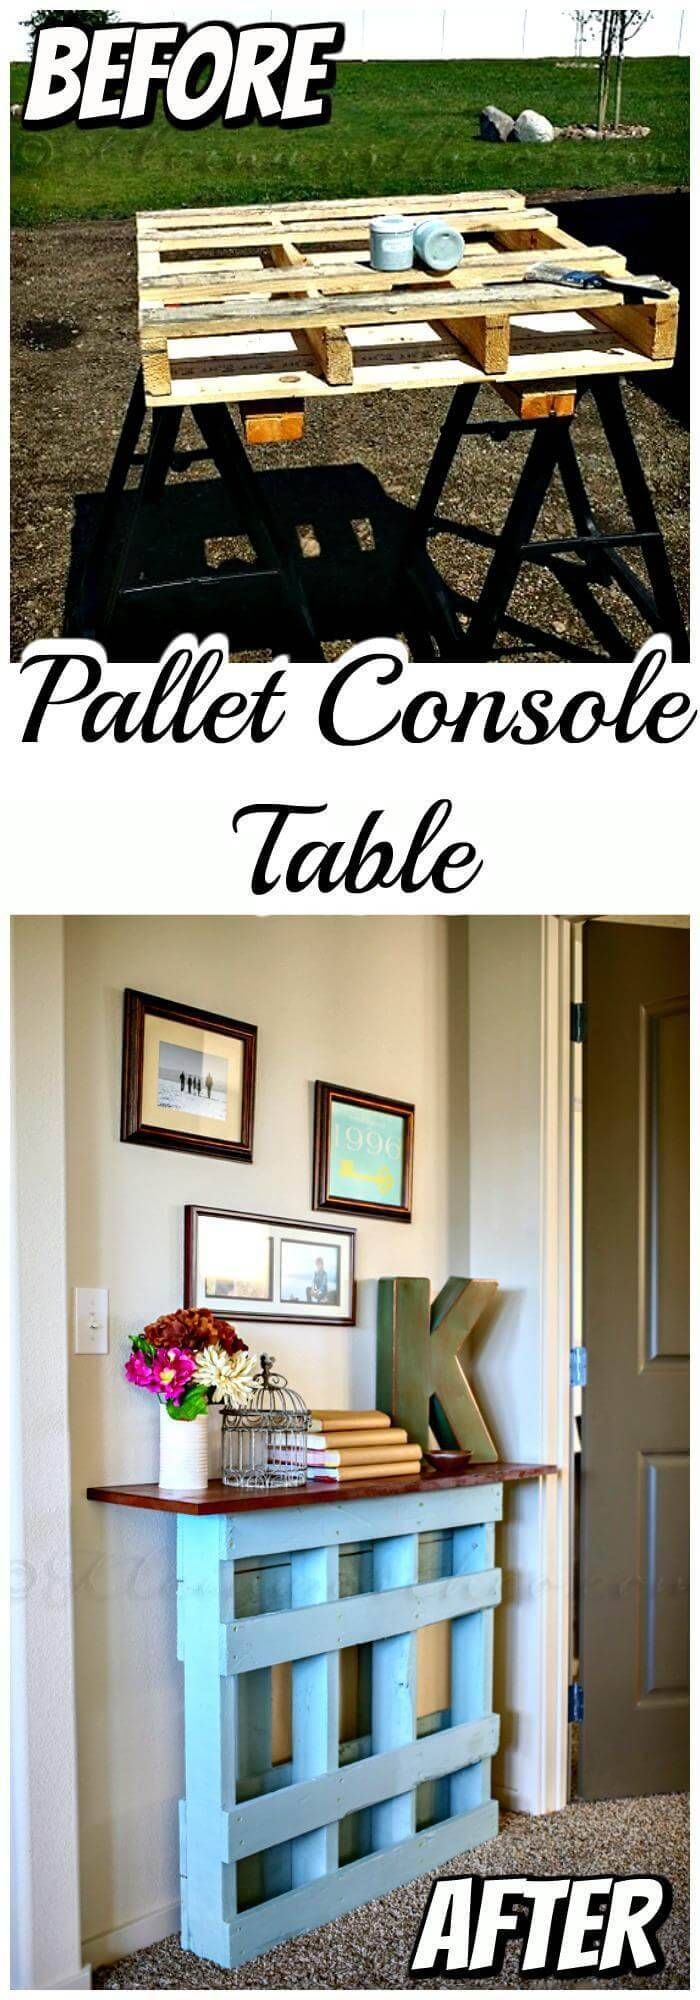 DIY Pallet Console Table Project